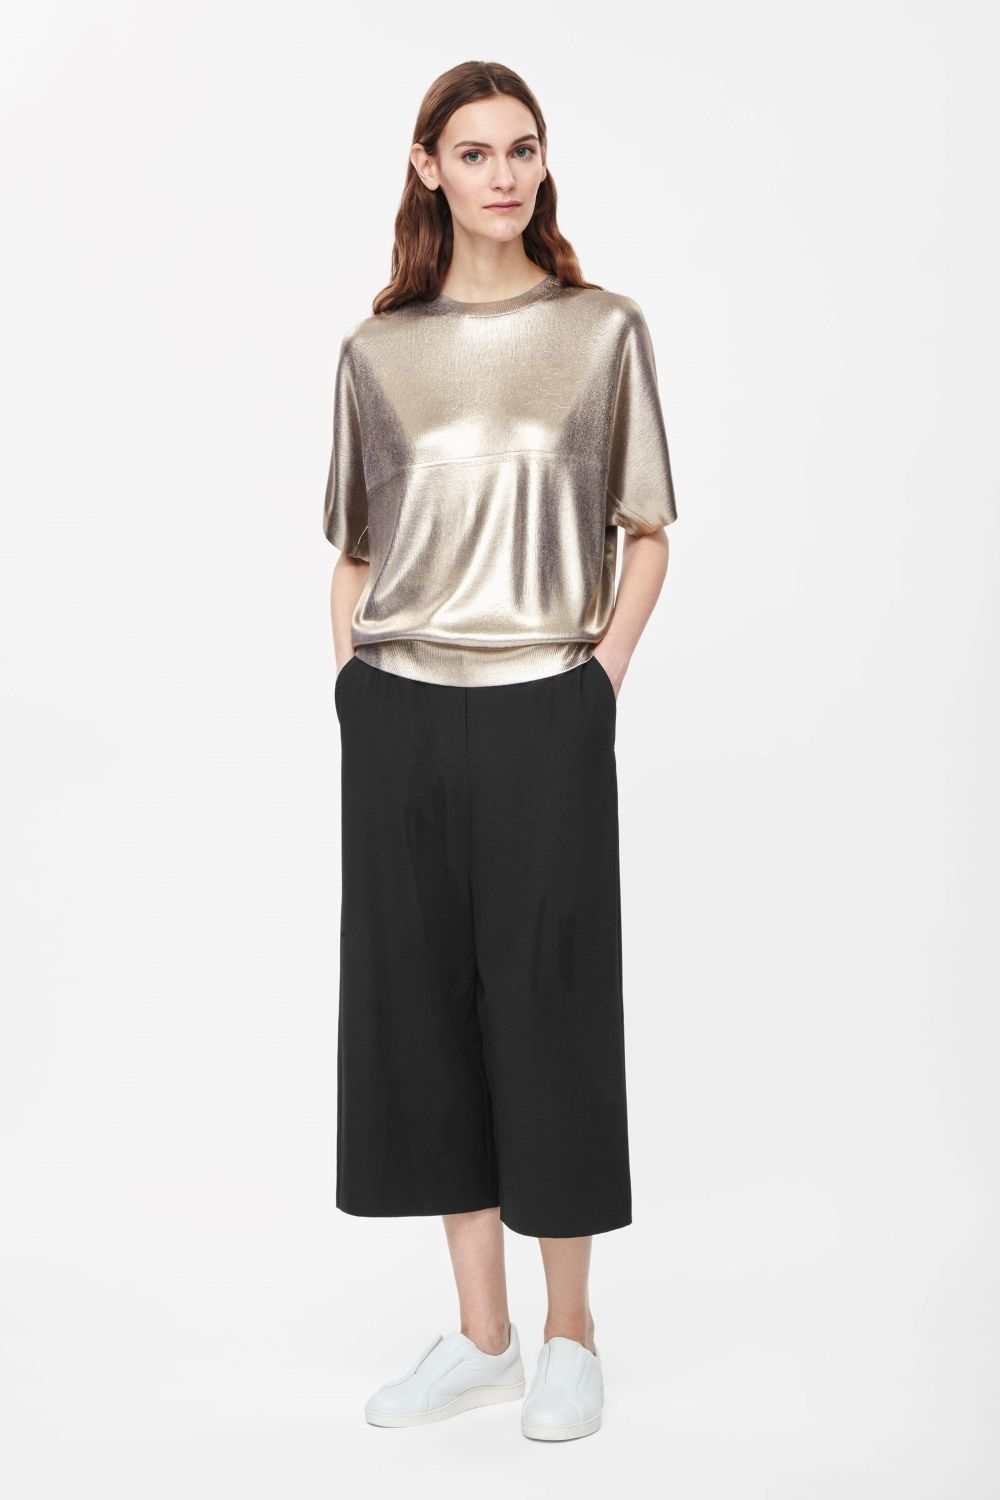 This round-neck top is made from fluid knitted fabric with a shiny metallic coating. Loose and oversized, it has raw-cut kimono sleeves, ribbed hemline and a seam detail across the front.